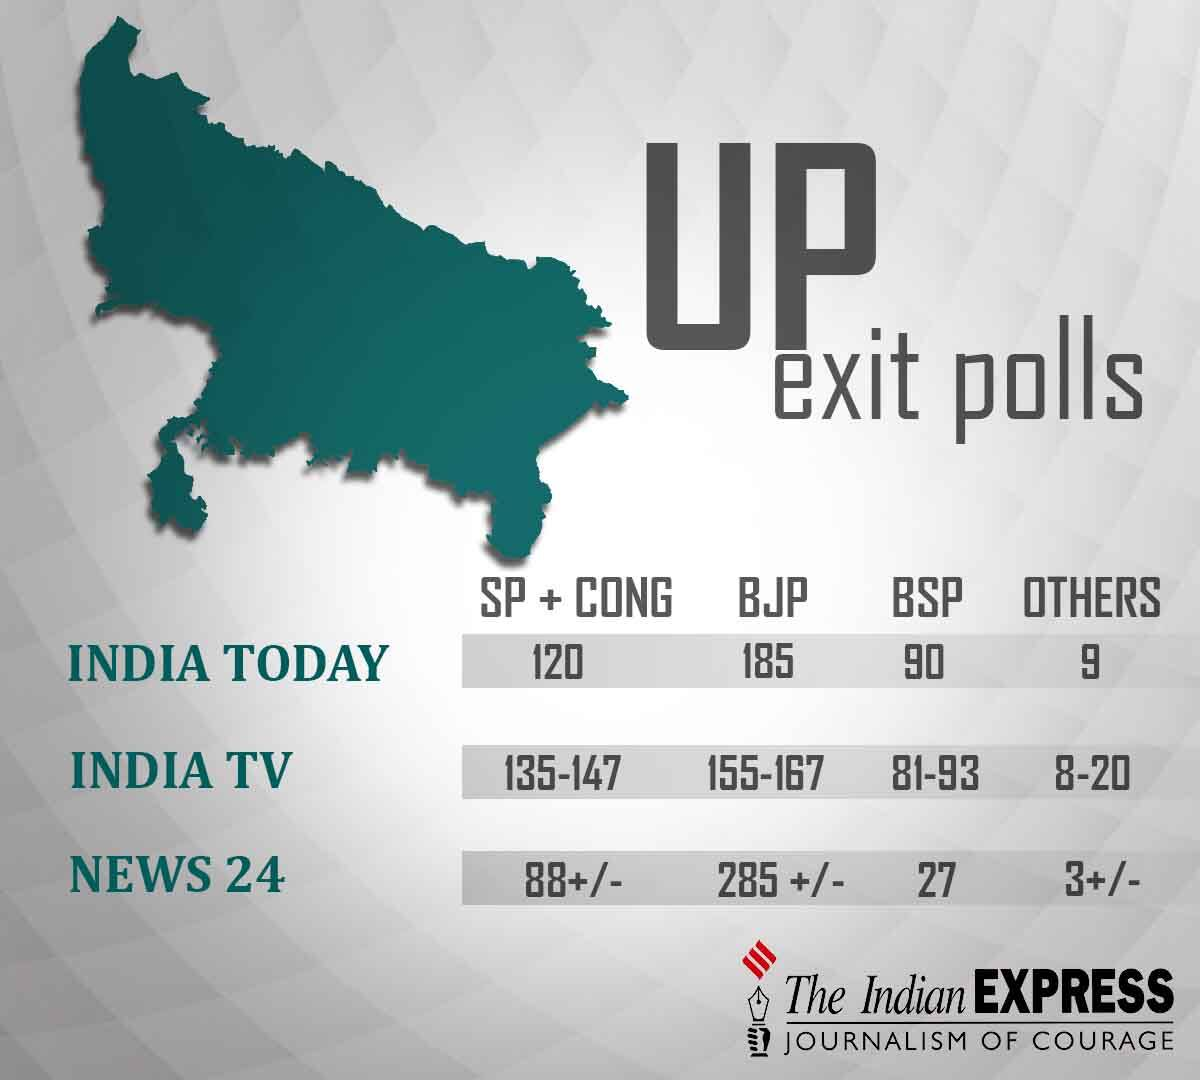 UP exit polls 2017, UP exit poll results, UP exit poll results 2017, UP elections 2017, UP election exit polls, BJP exit polls